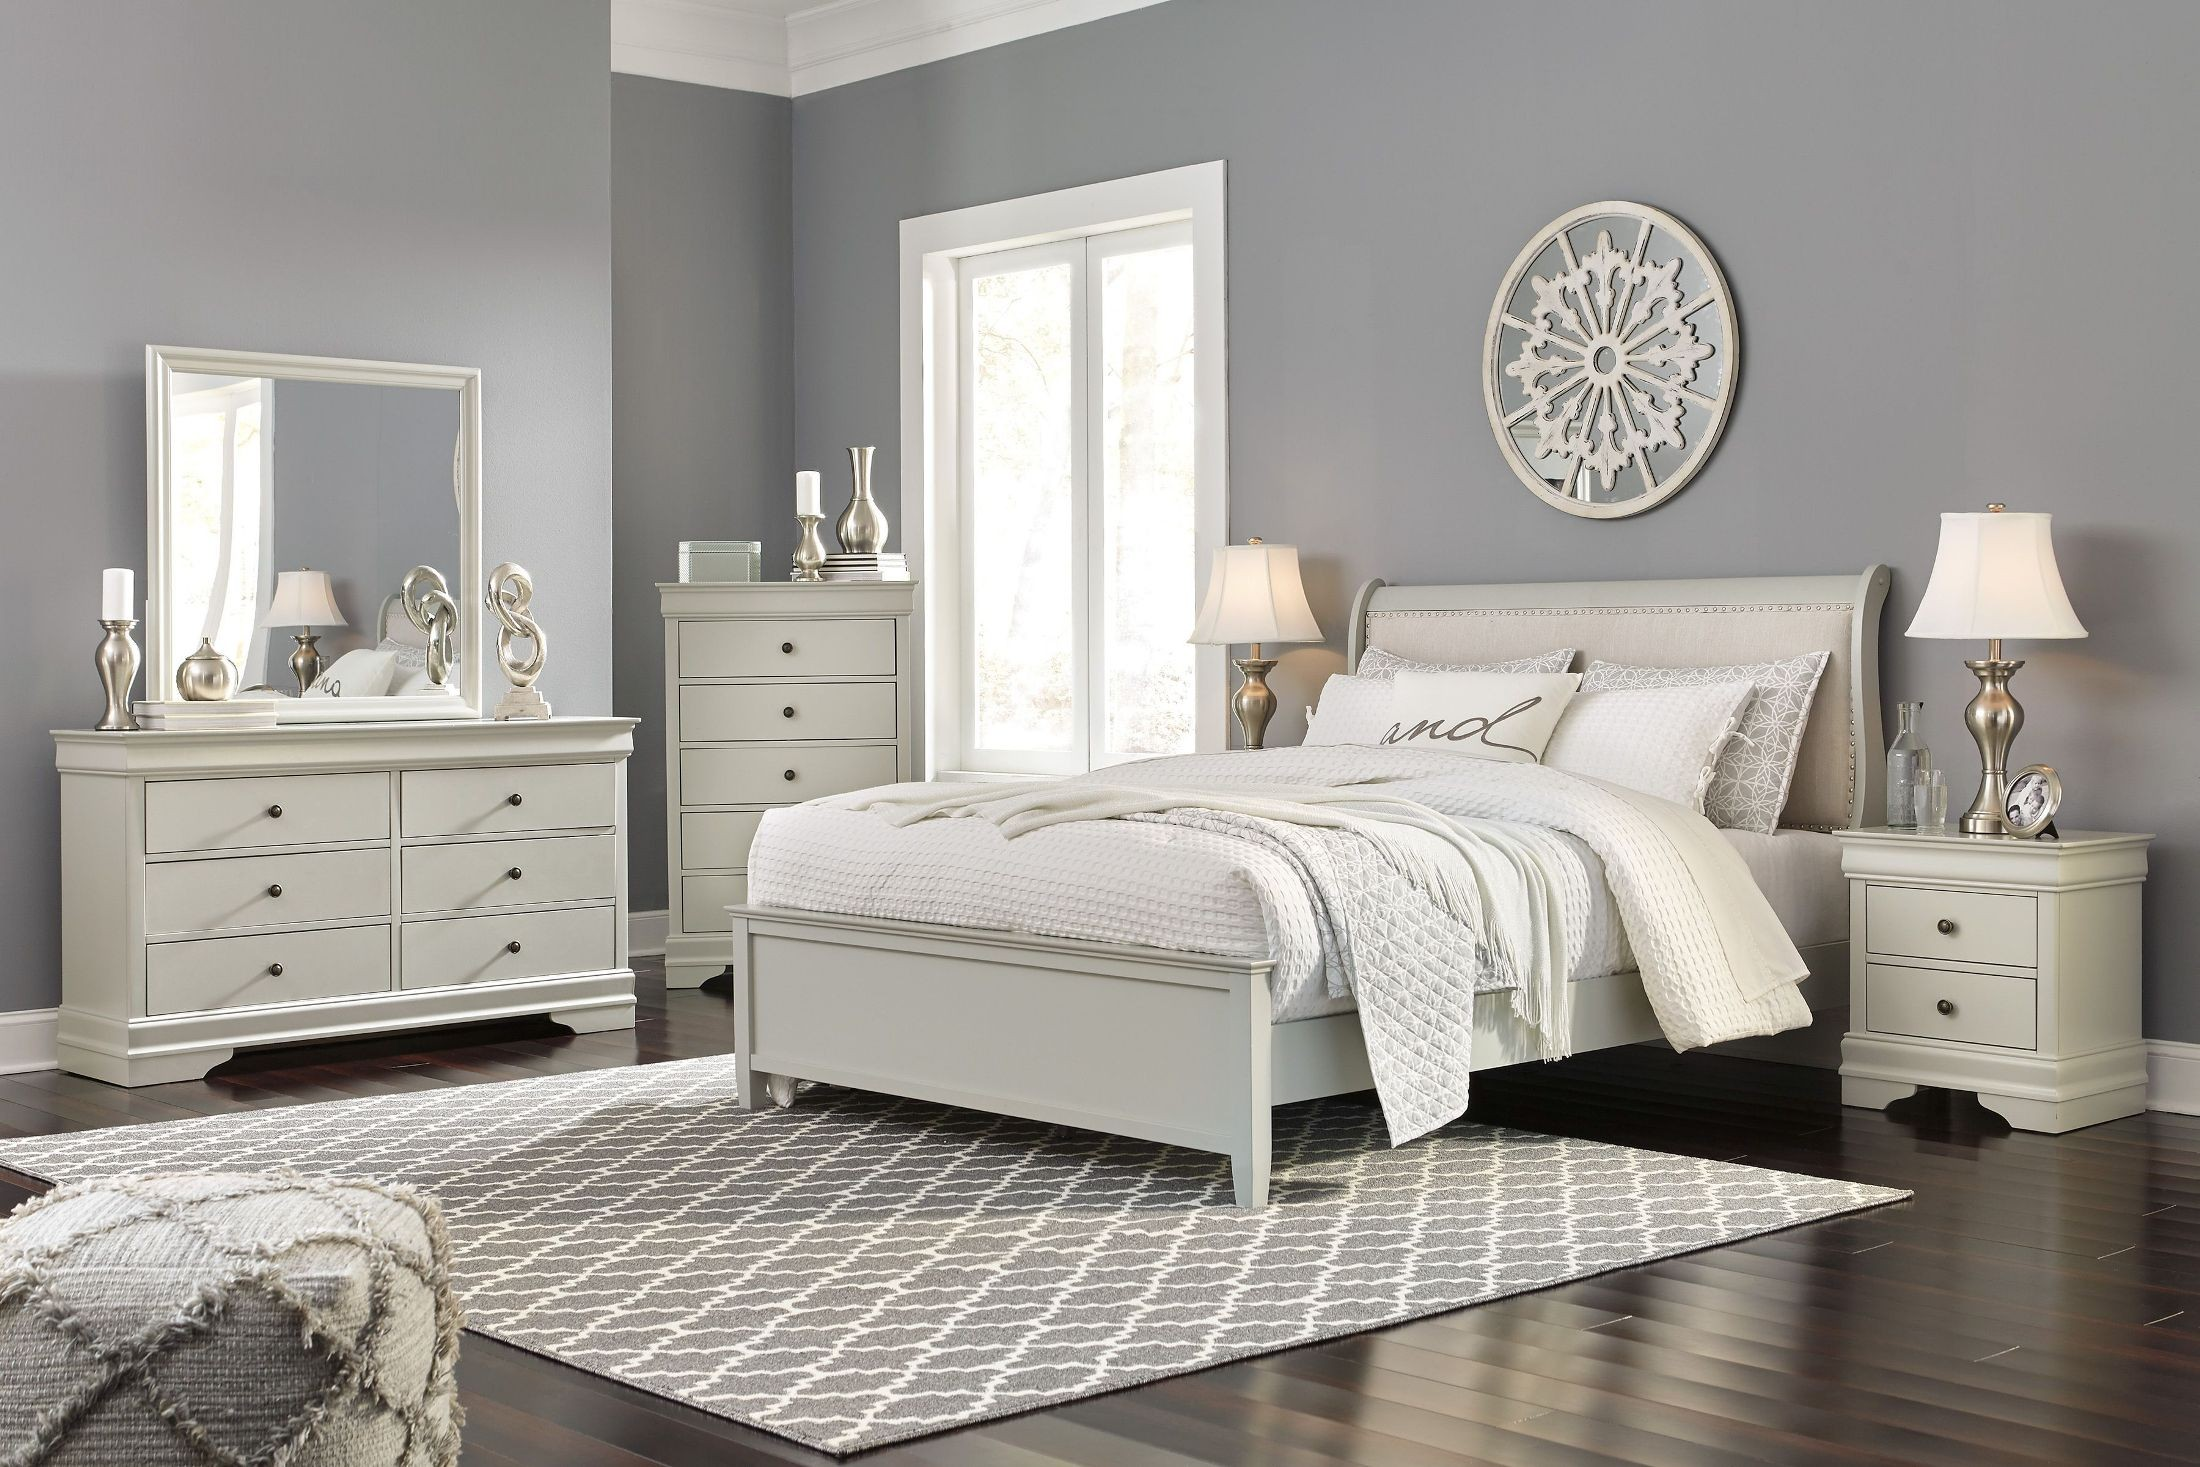 Jorstad Gray Upholstered Sleigh Bedroom Set from Ashley